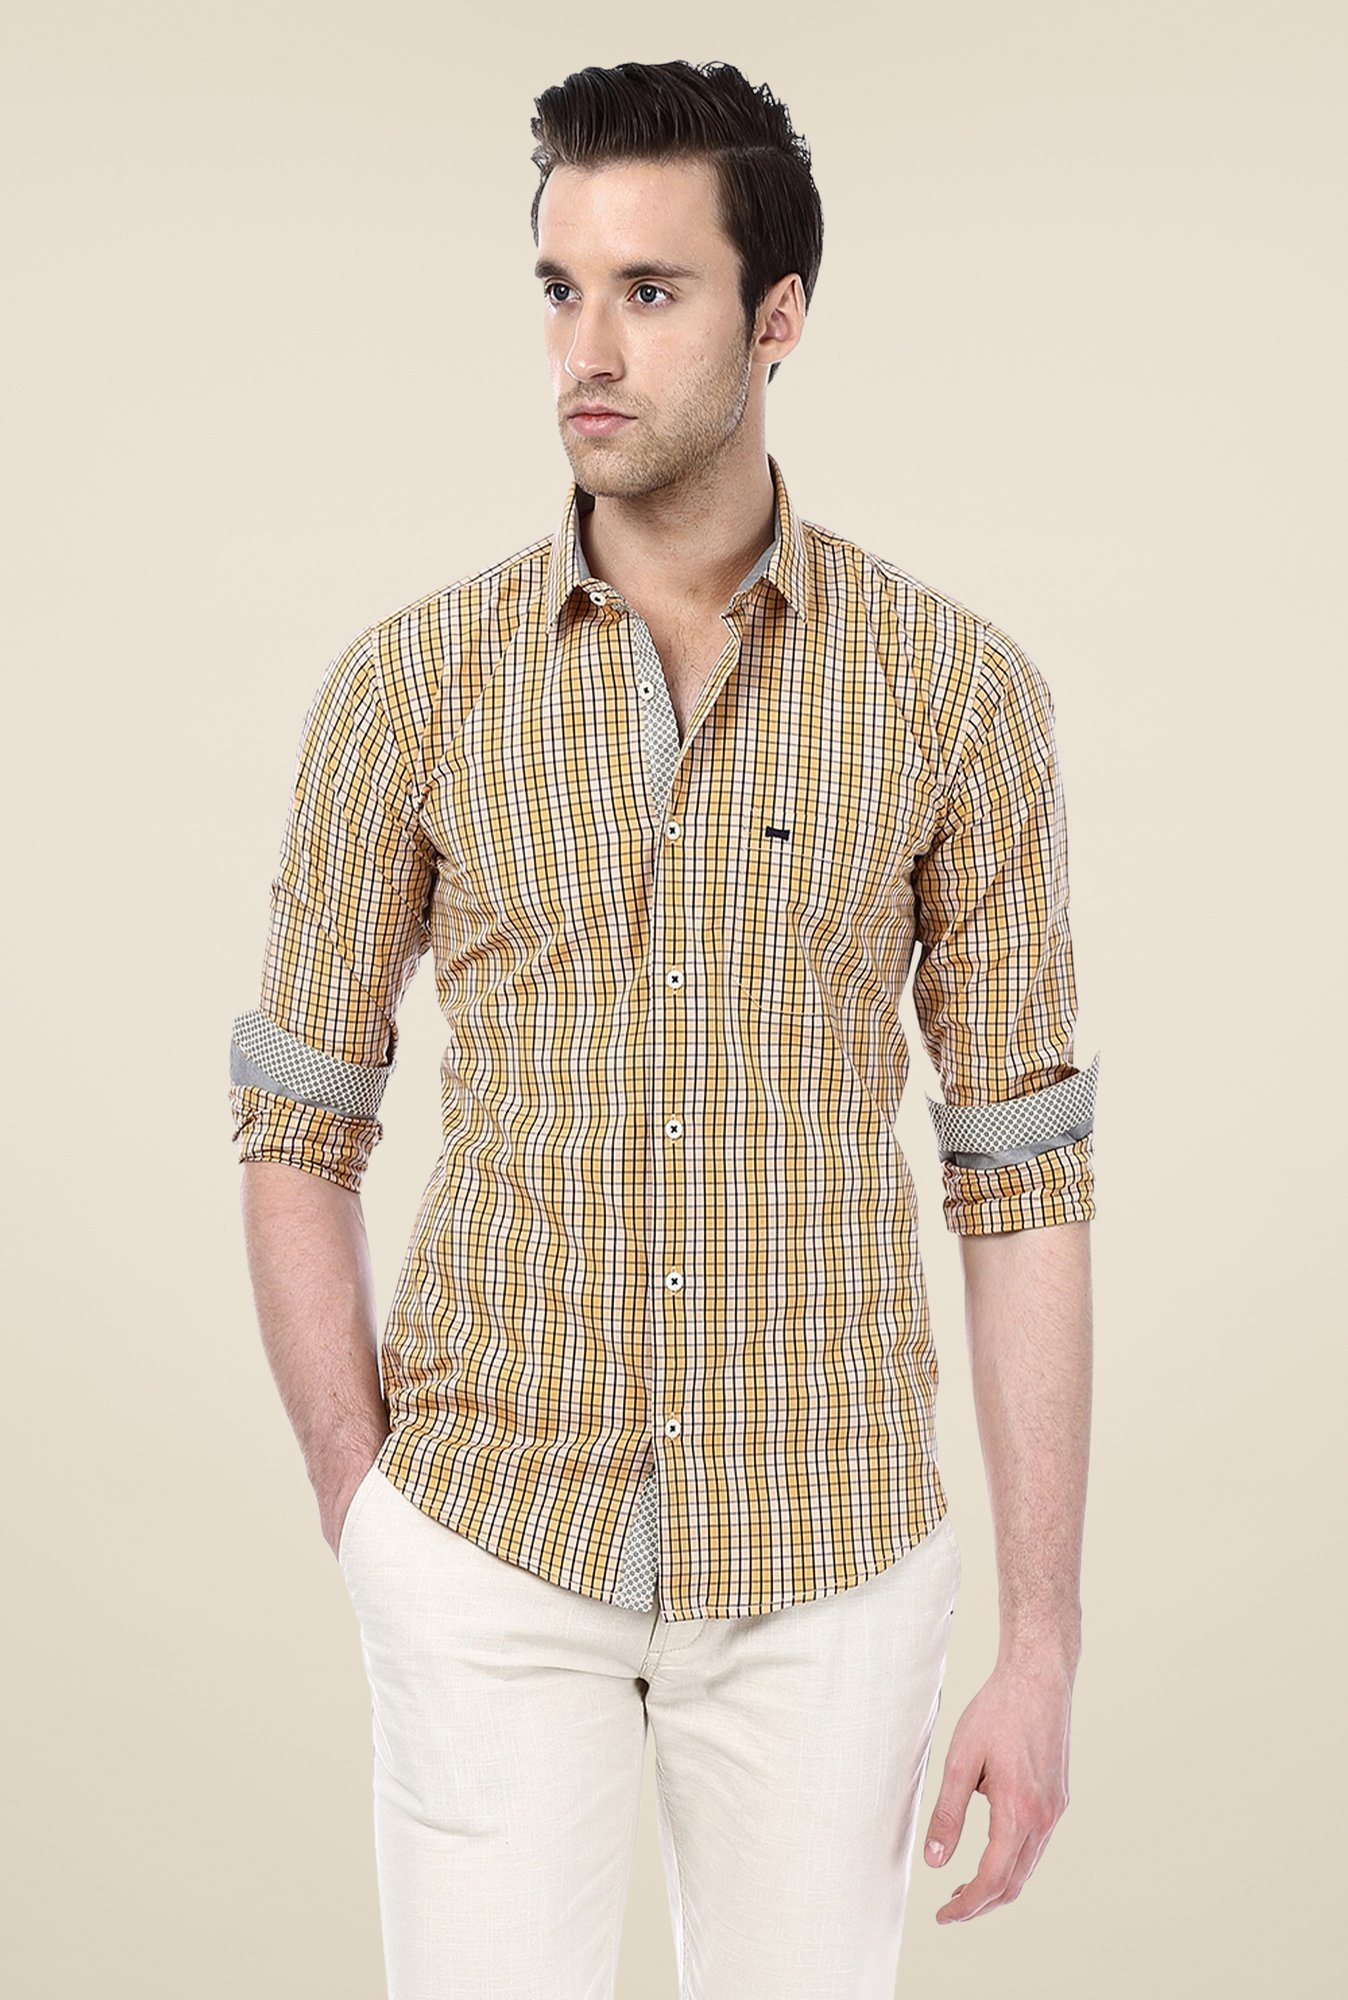 Basics Mustard Checks Shirt